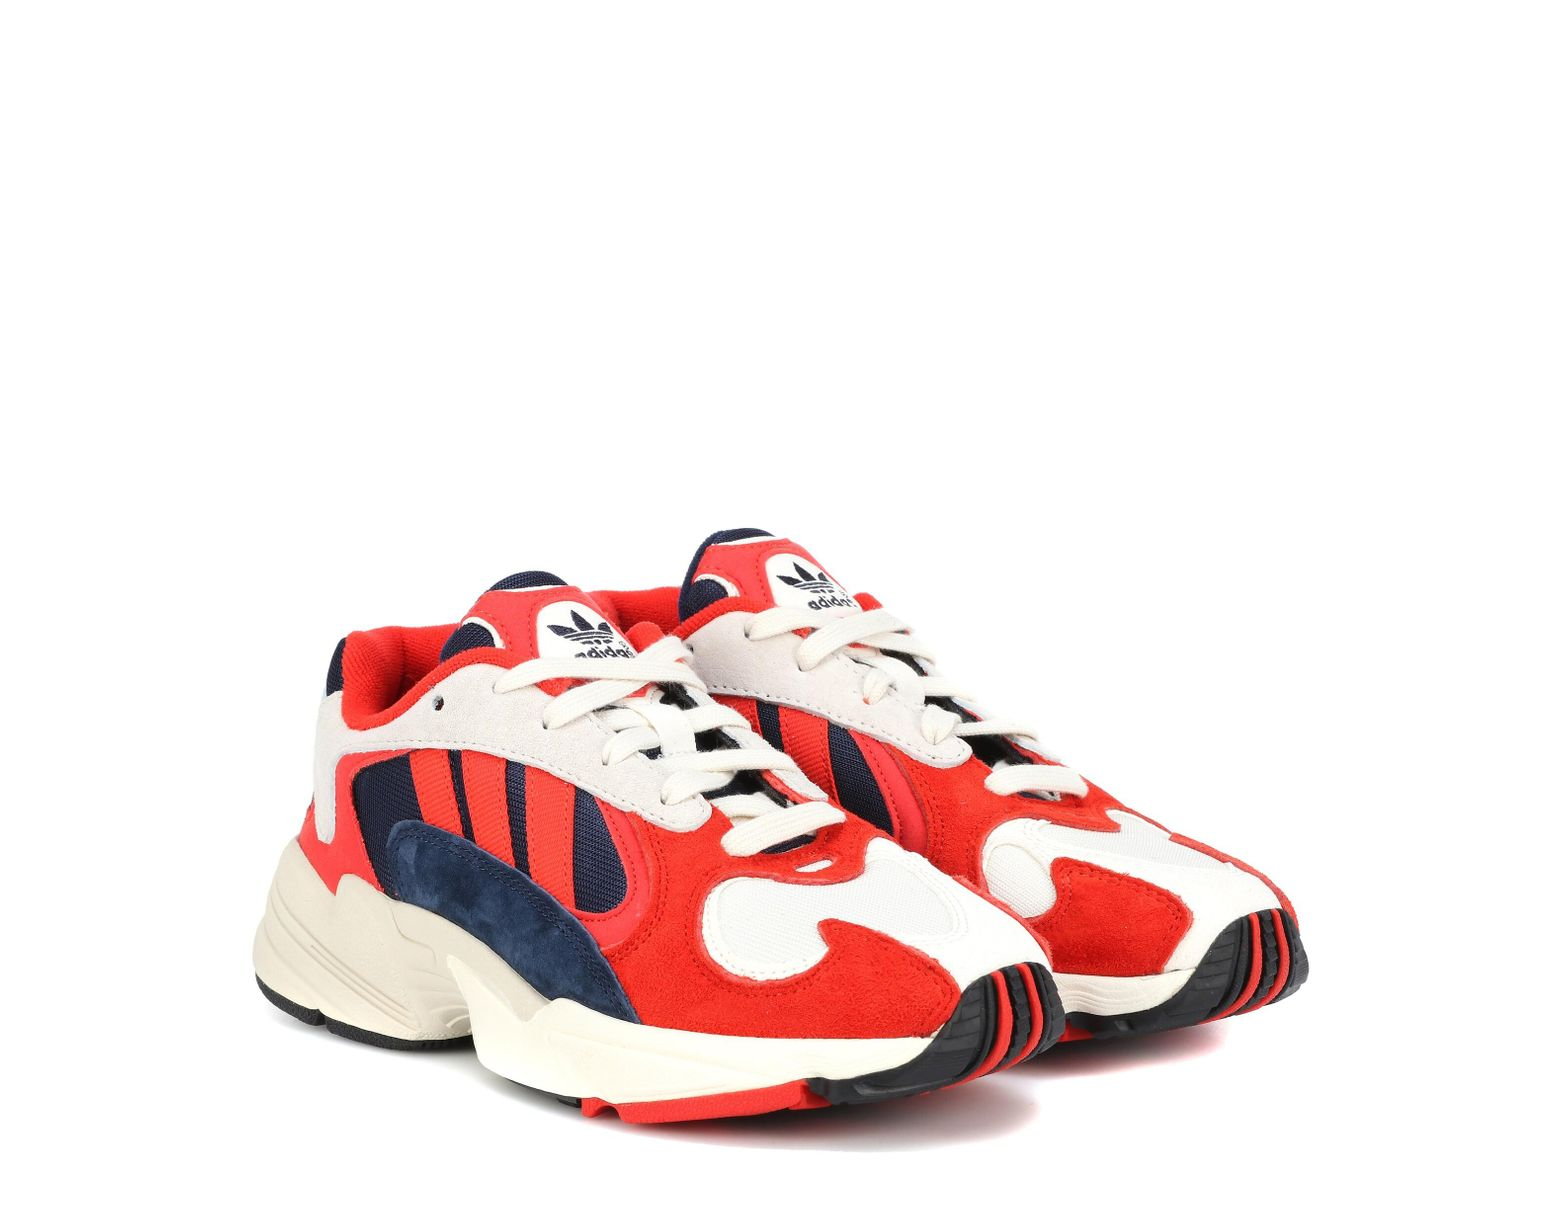 Sneakers femme Adidas | Ce que je veux | Zapatos adidas